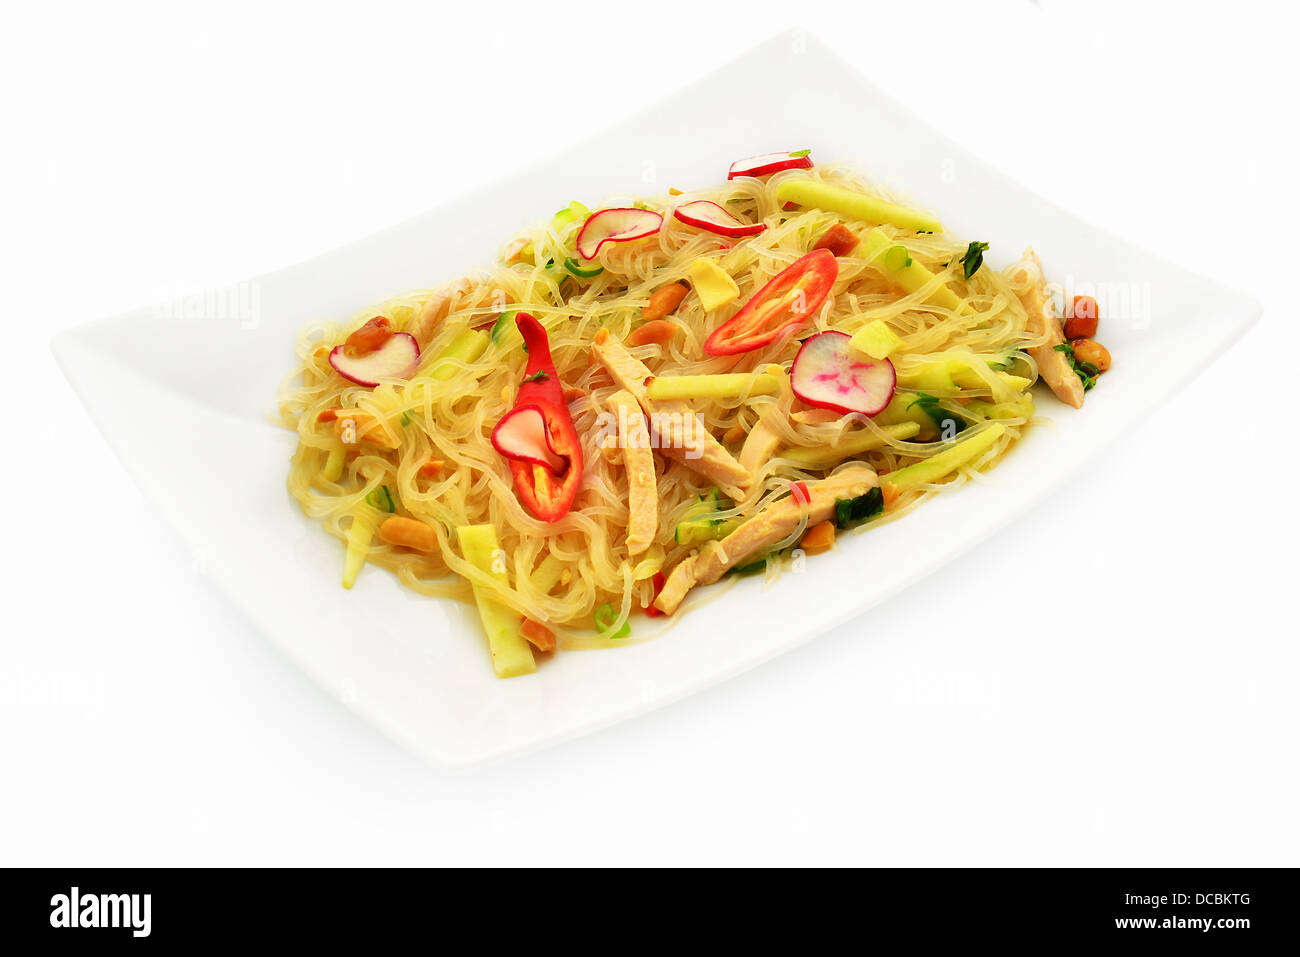 Vietnamese salad with noodles, chicken, nuts, hot pepper, apple and radish, - Stock Image